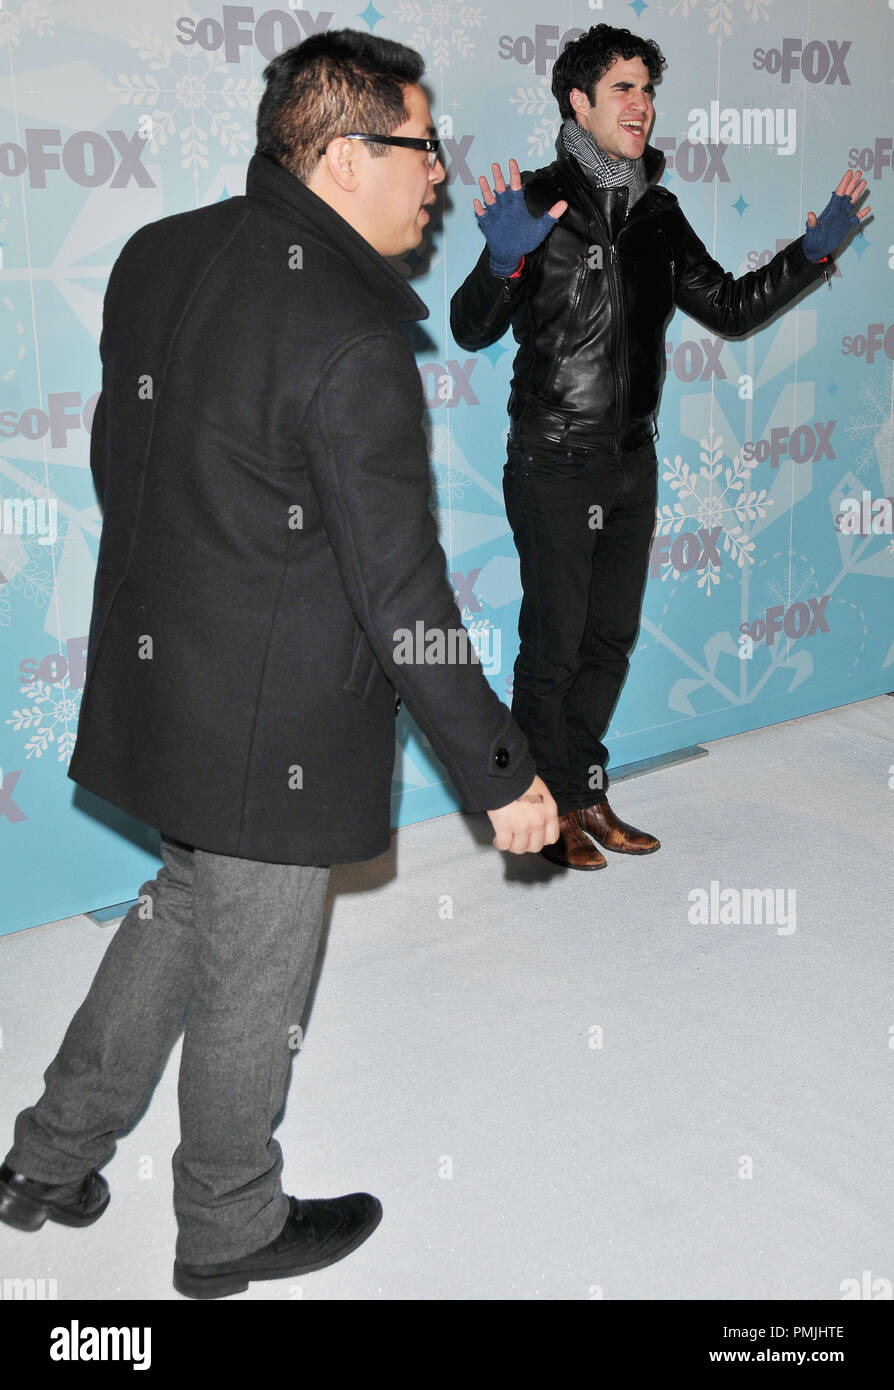 Publicist Michael Samonte & Darren Criss at the 2011 FOX Winter All-Star Party held at the Villa Sorriso Ristorante & Bar in Pasadena, CA. The event took place on Tuesday, January 11, 2011. Photo by PRPP_Pacific Rim Photo Press / PictureLux - Stock Image